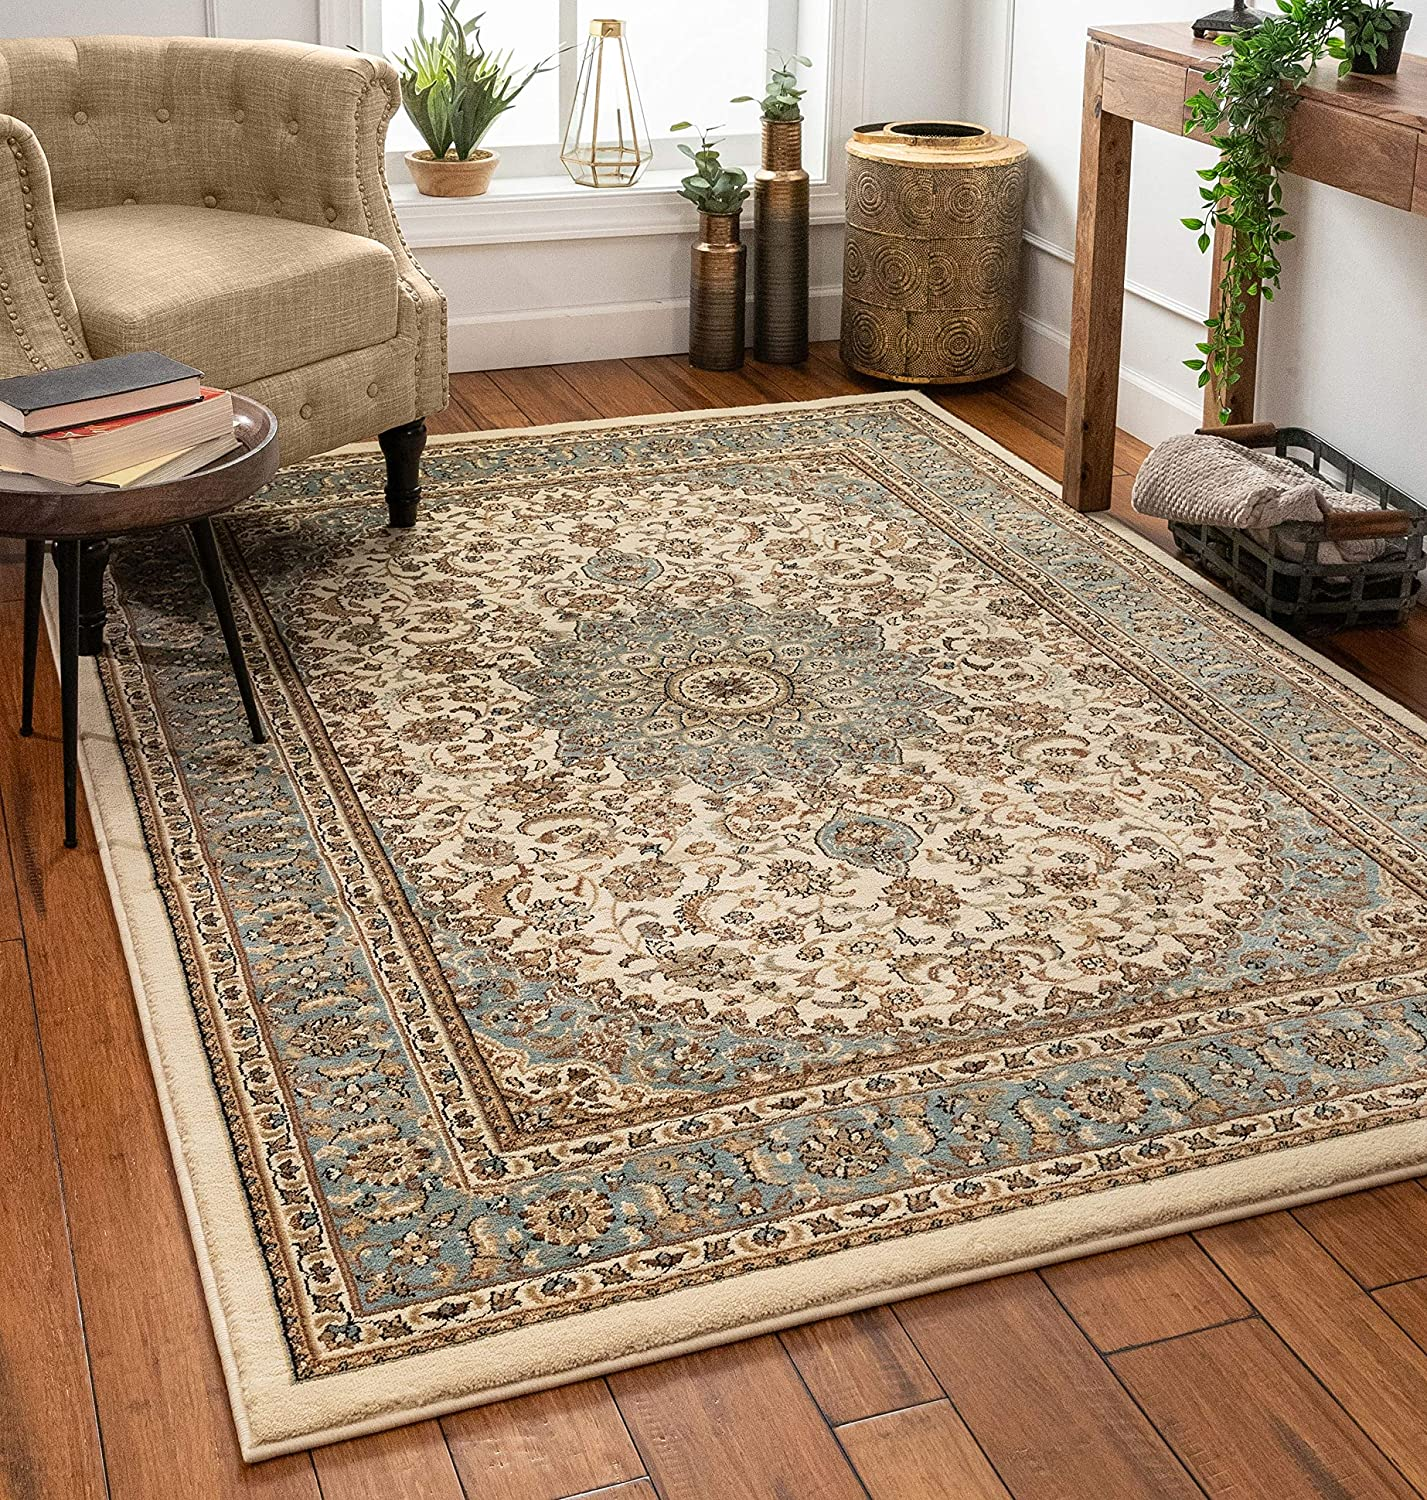 Well Woven Timeless Aviva Traditional French Country Oriental Ivory Area Rug 6 7 X 9 3 Furniture Decor